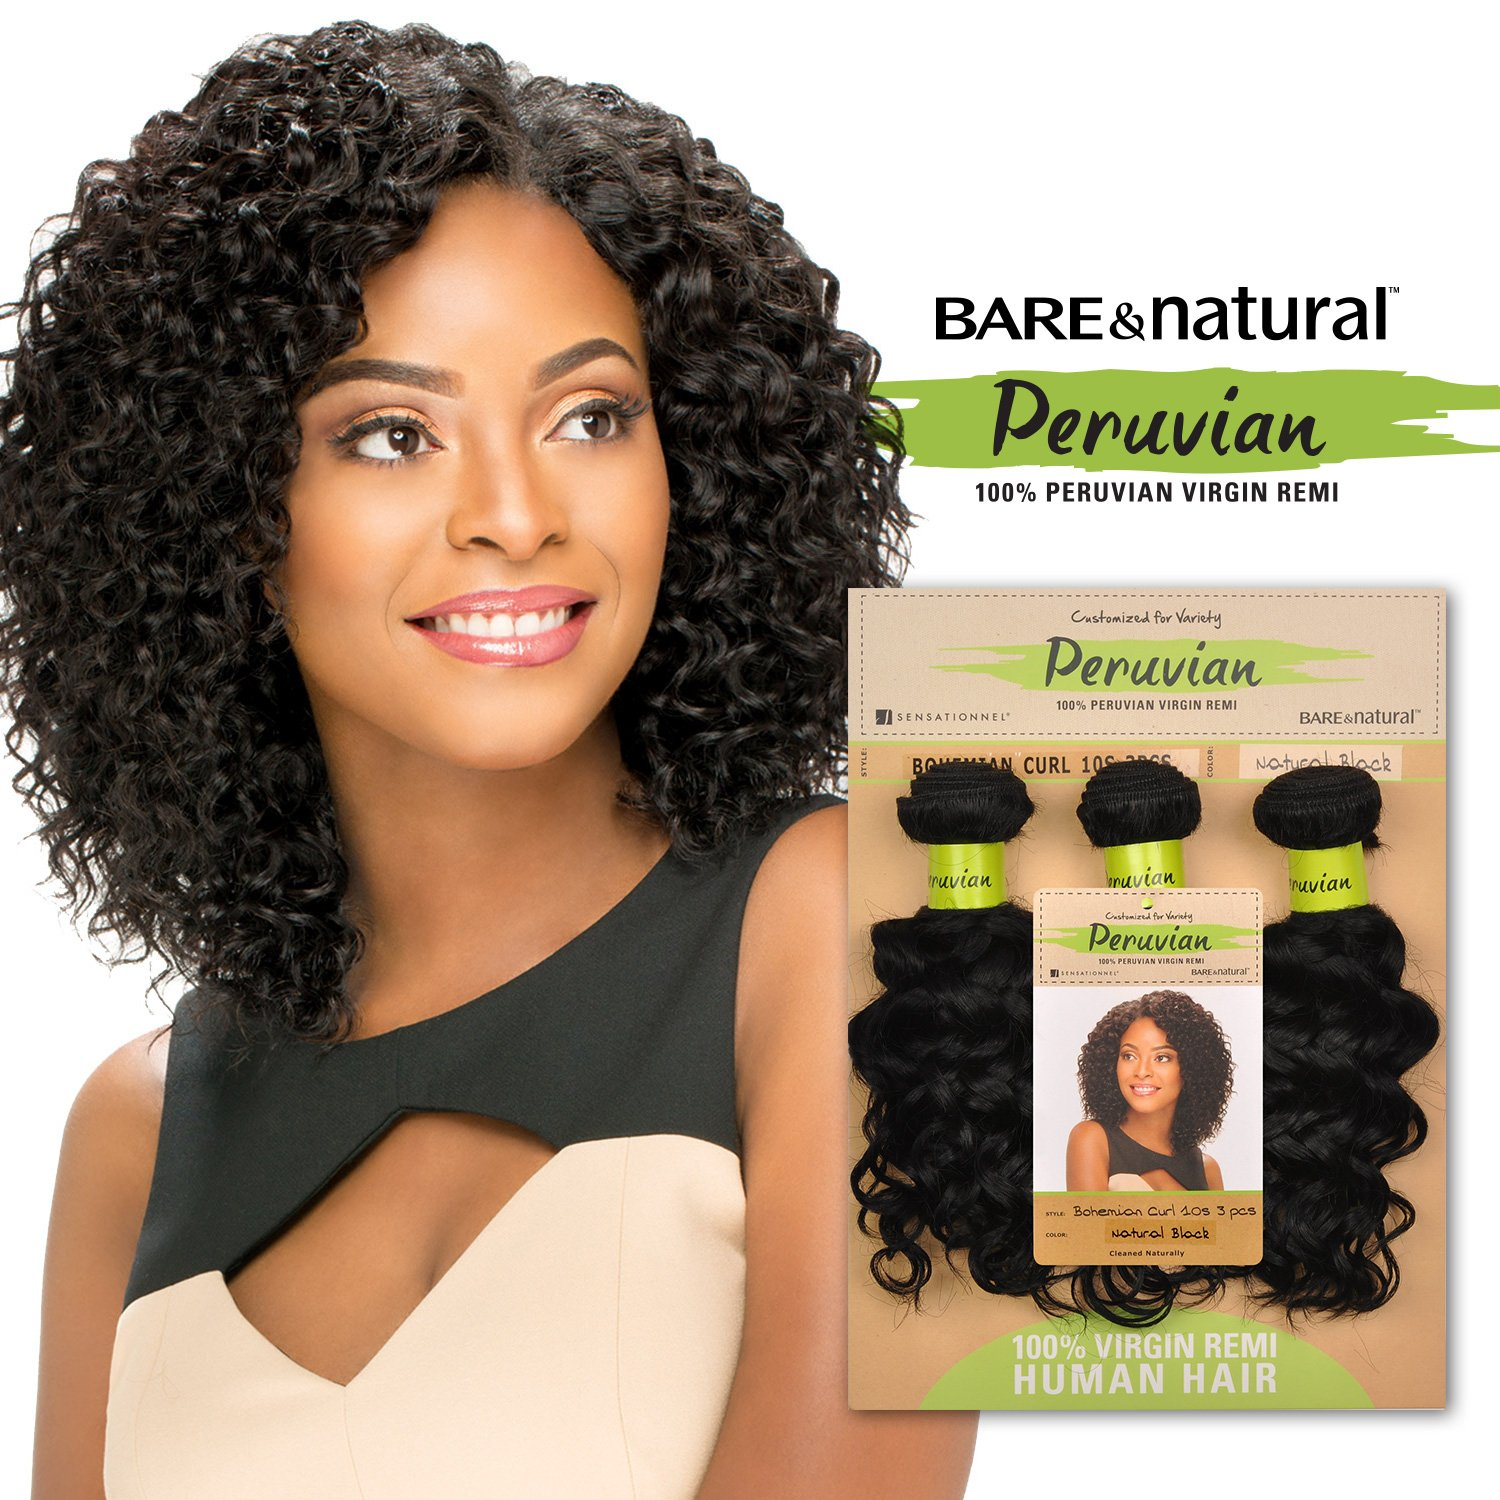 Bare And Natural Peruvian Hair Review